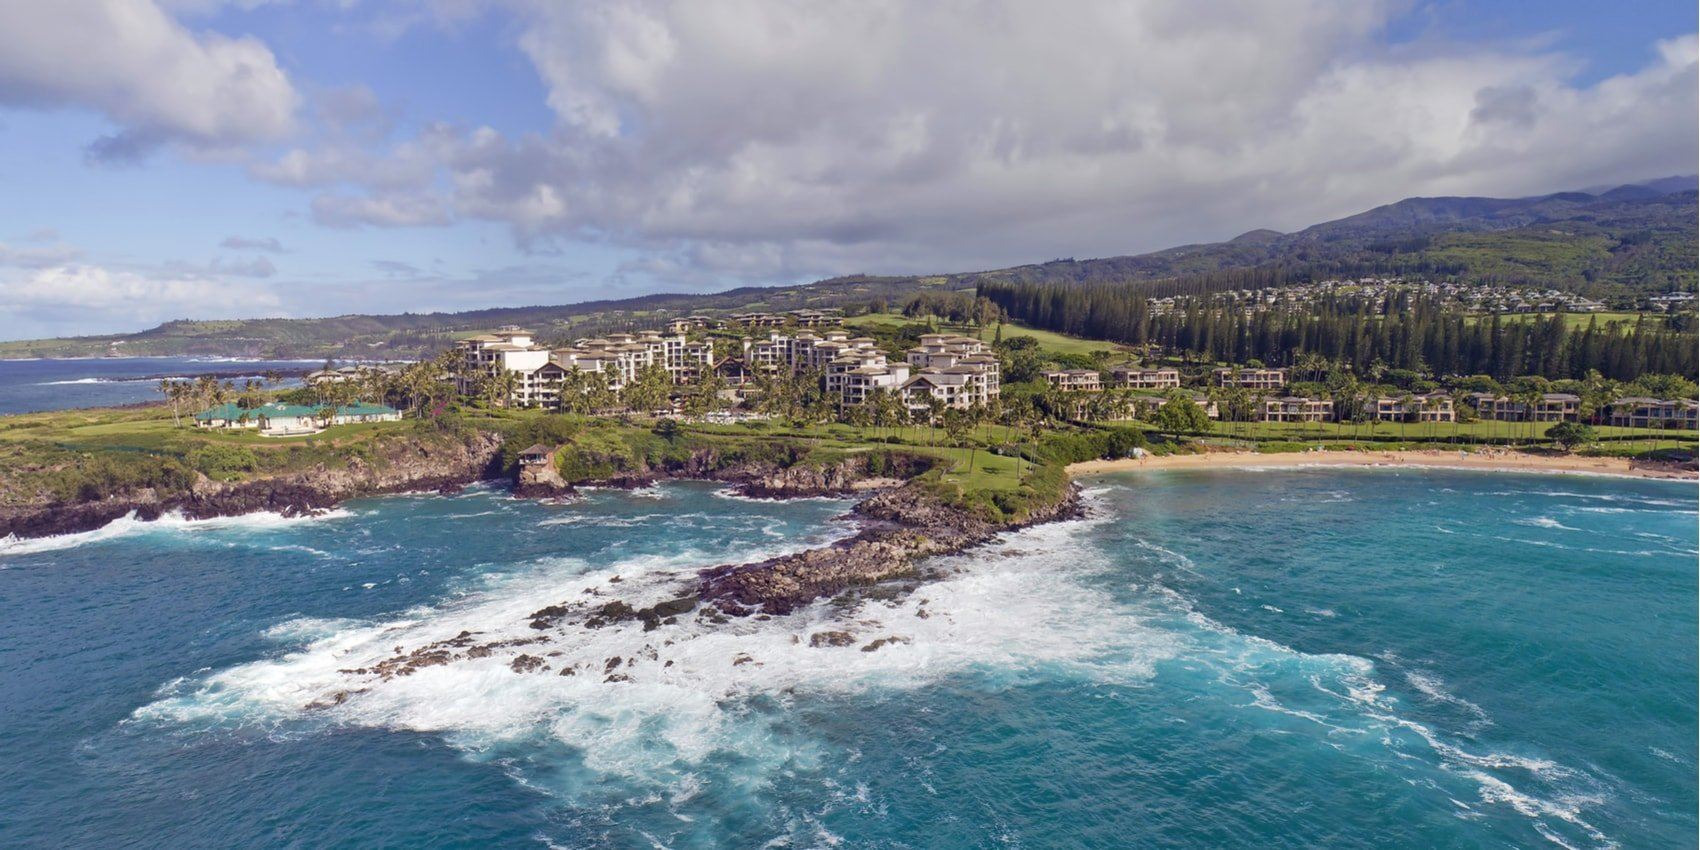 kapalua bay beach 2018